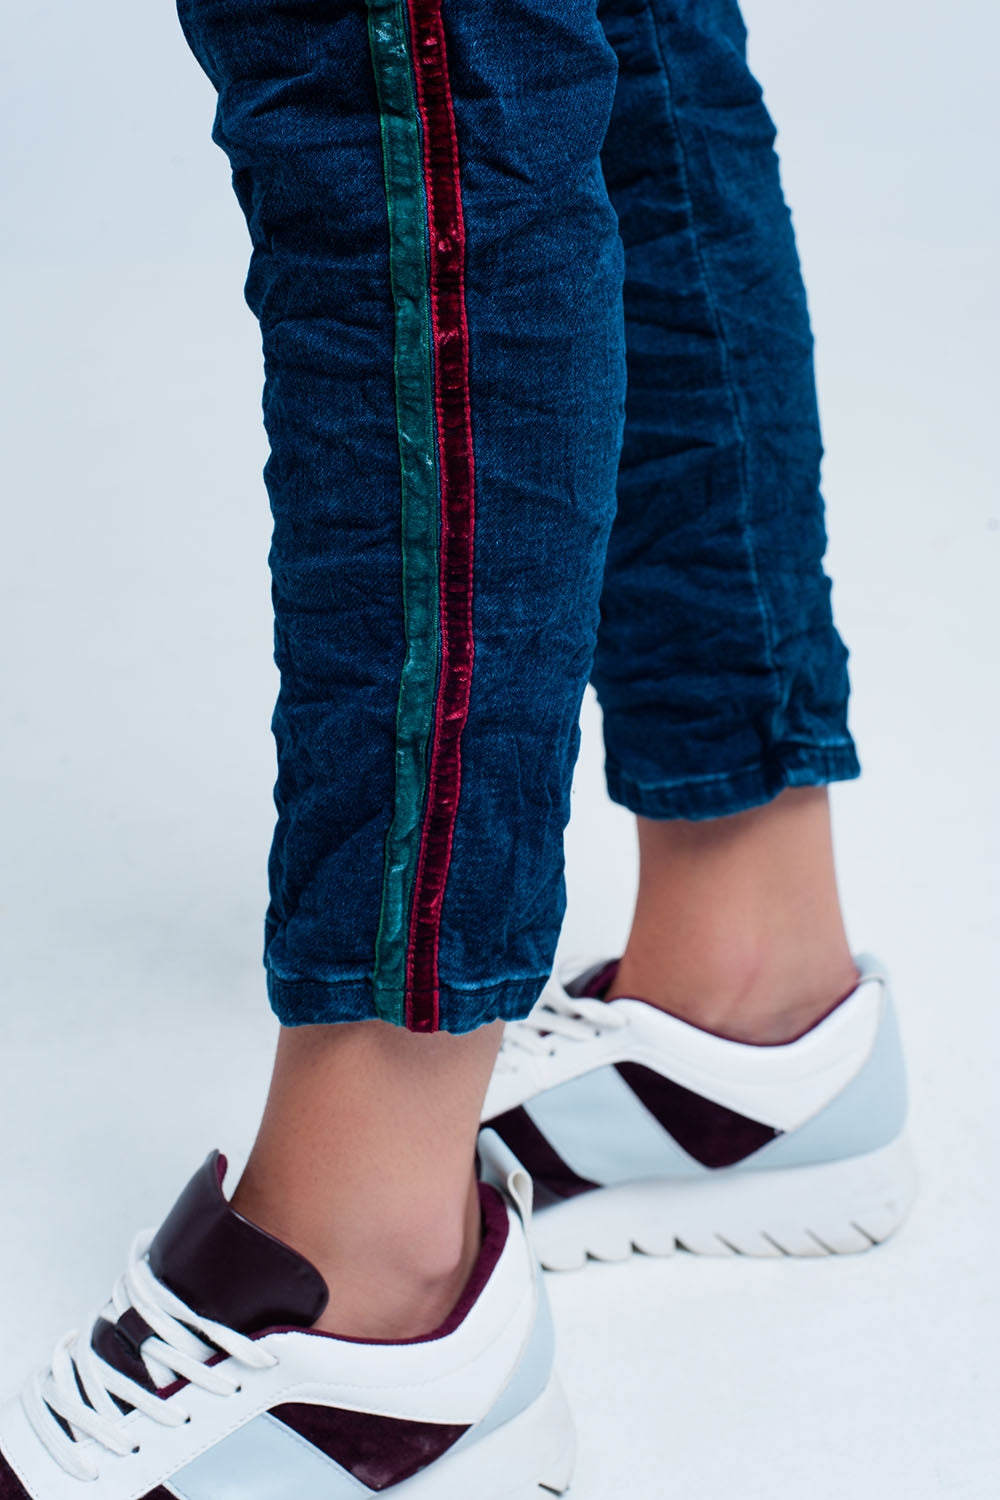 Jeans Jogger Con Raya Lateral Granate Y Verde